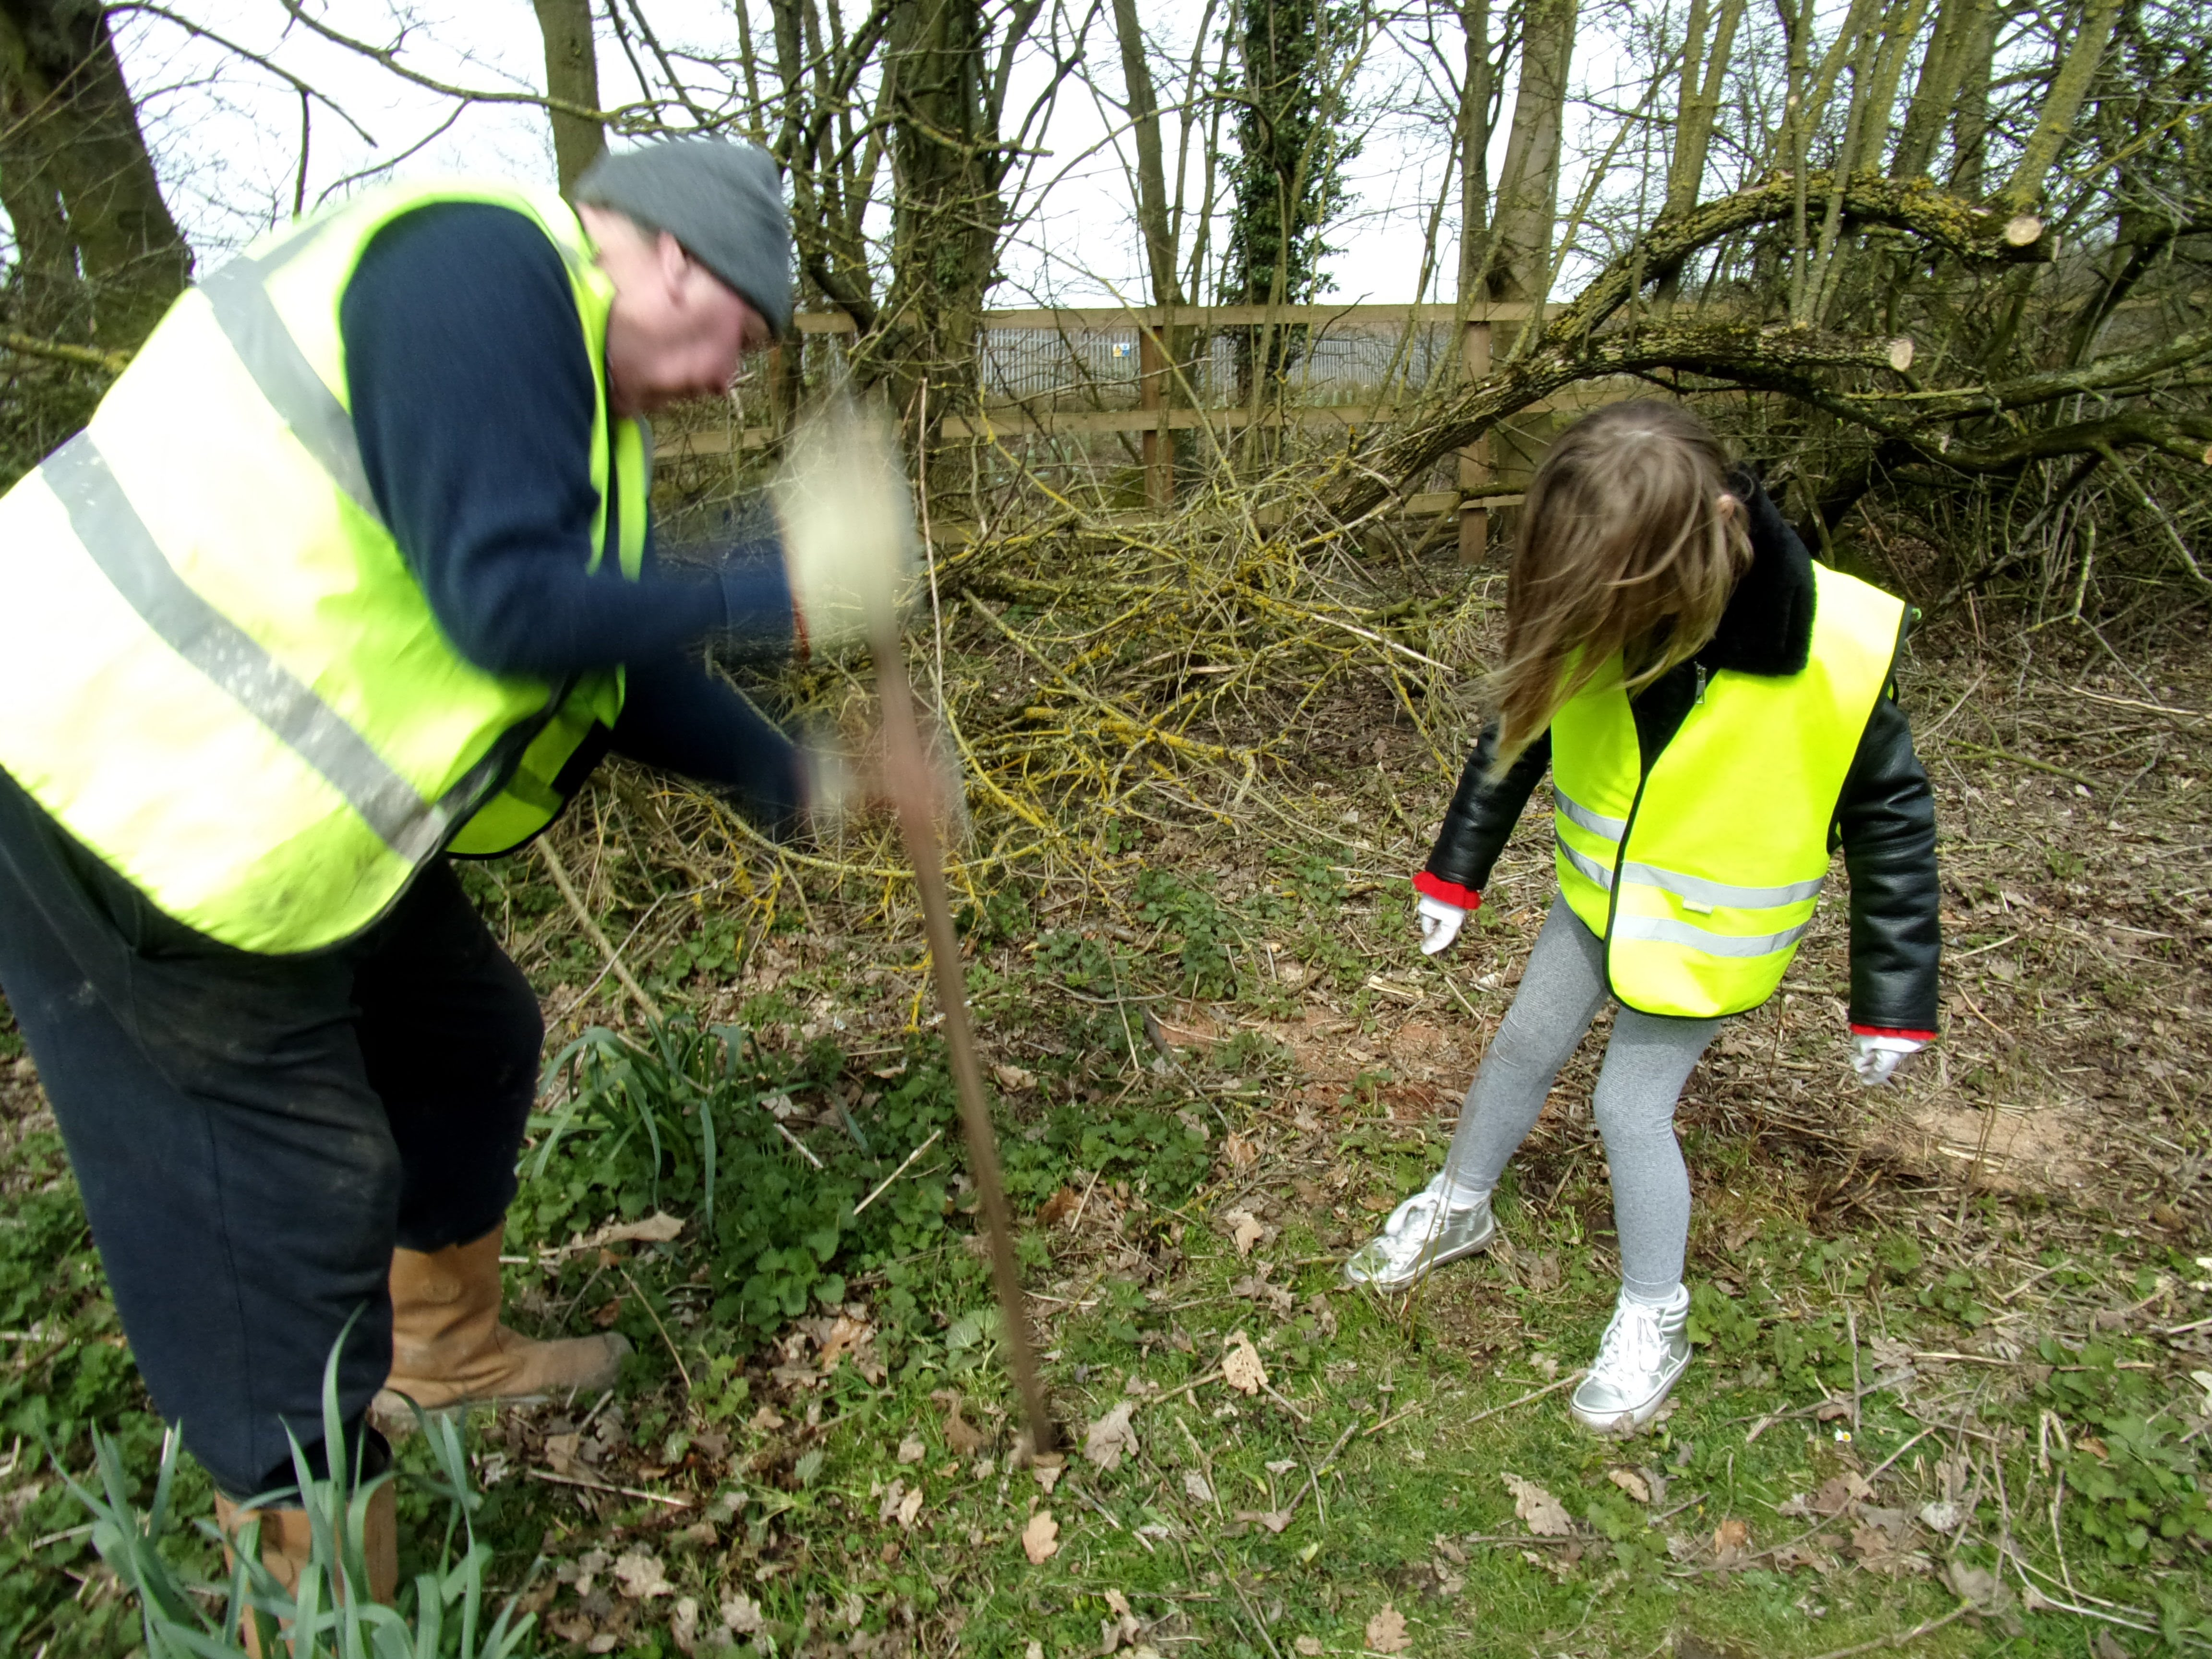 Spring clean, Hopnock/Bursnips Road junction